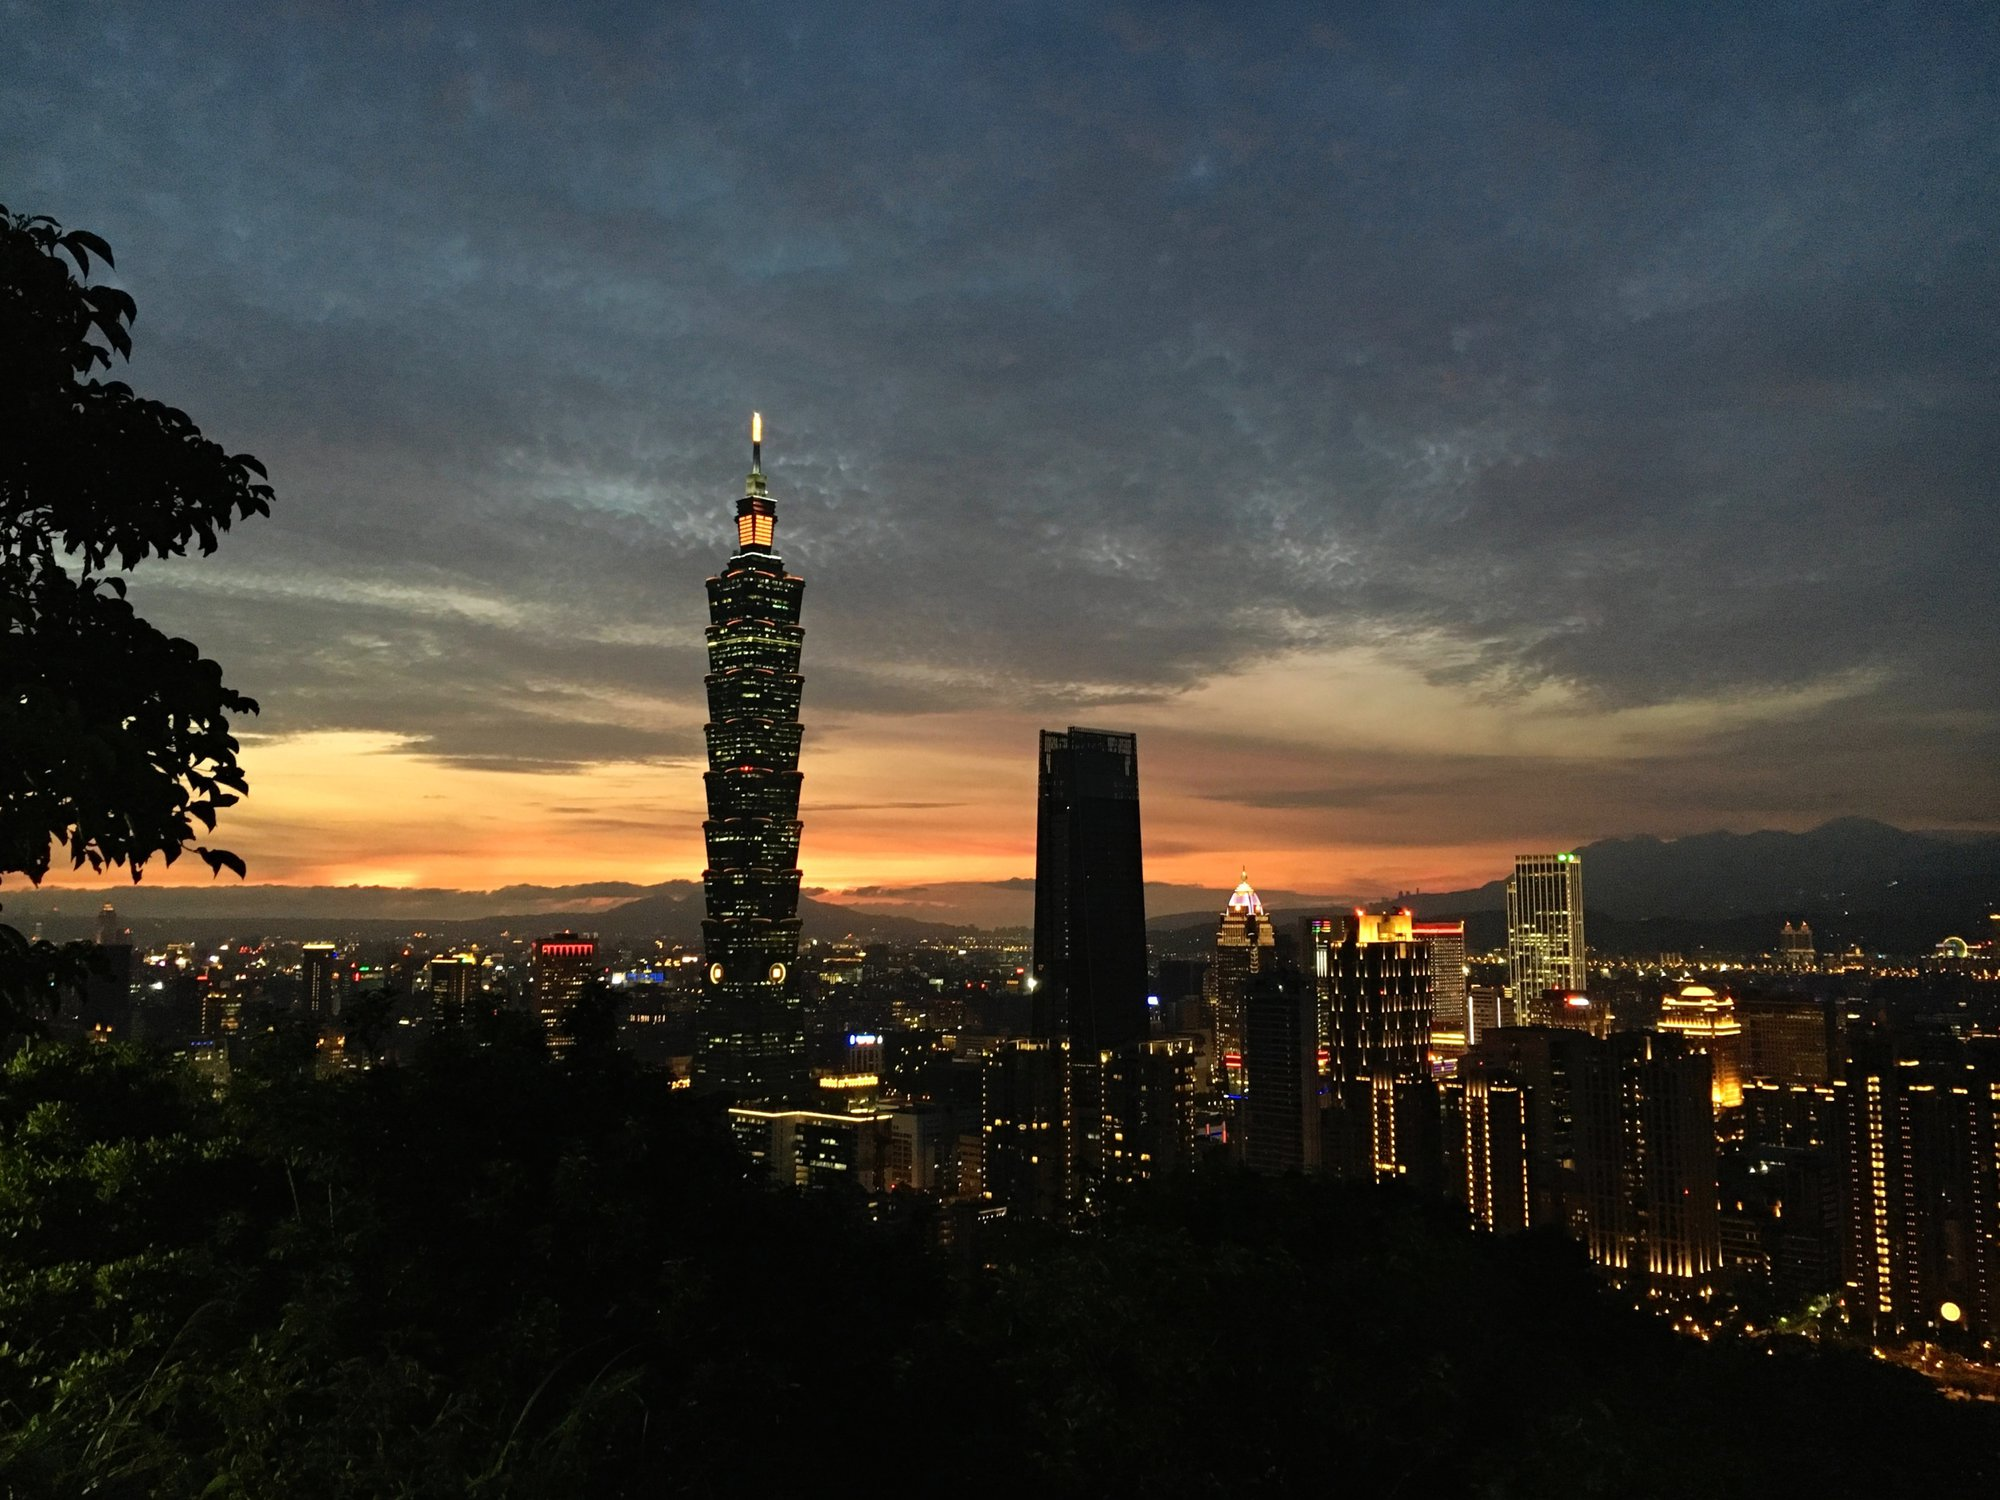 Taipei at night from Elephant Mountain